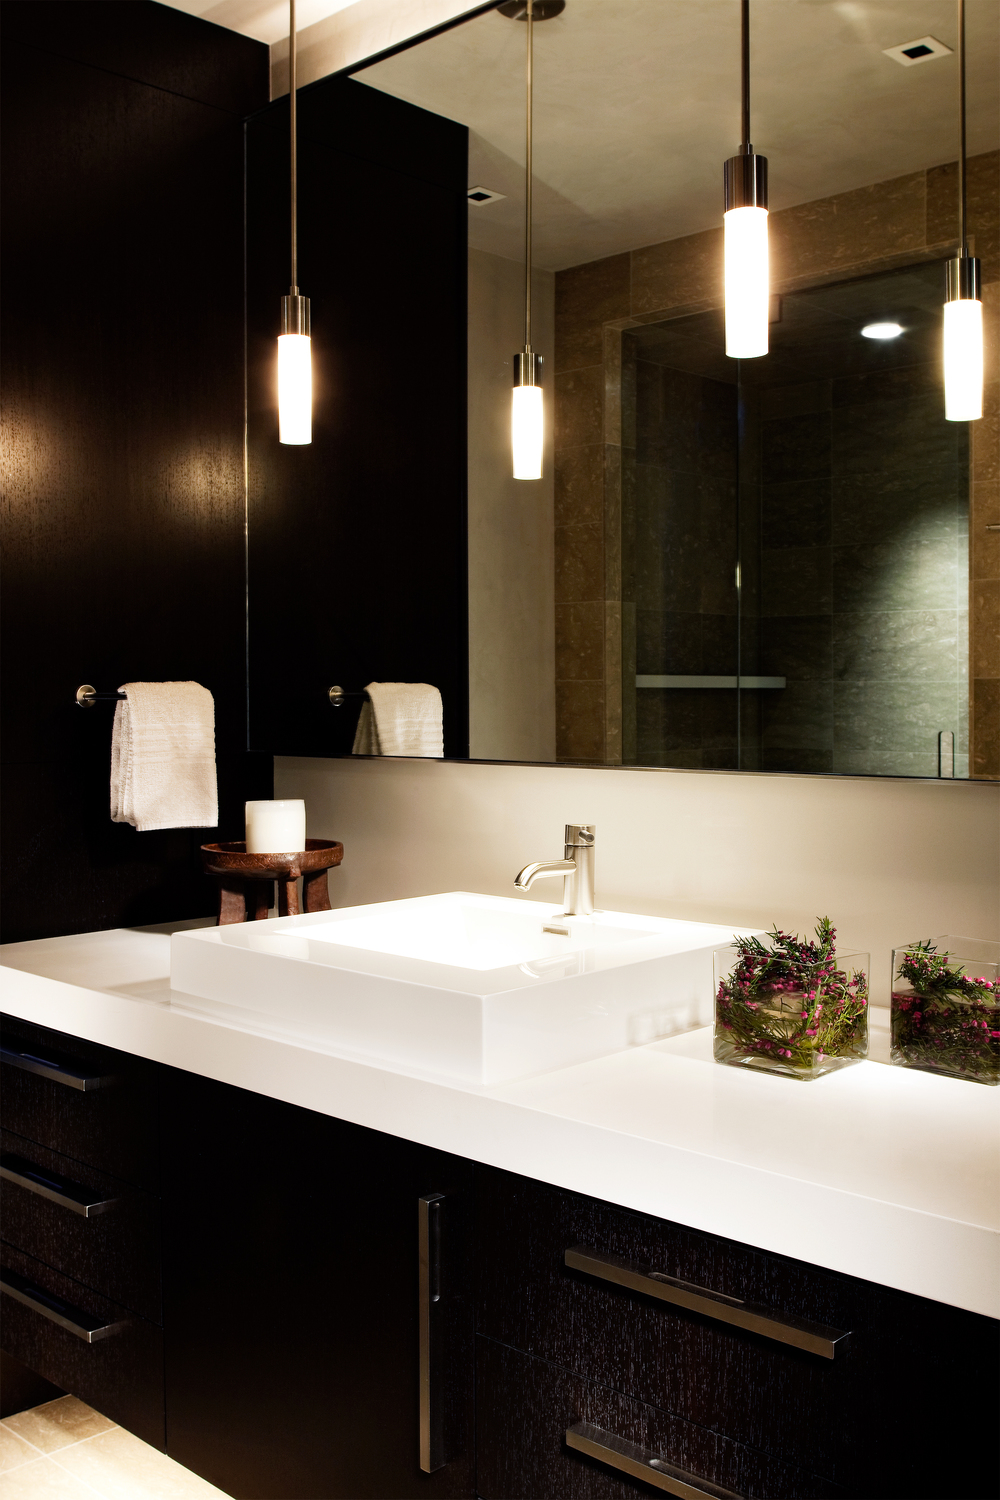 b&gdesign-powder-room2.jpg